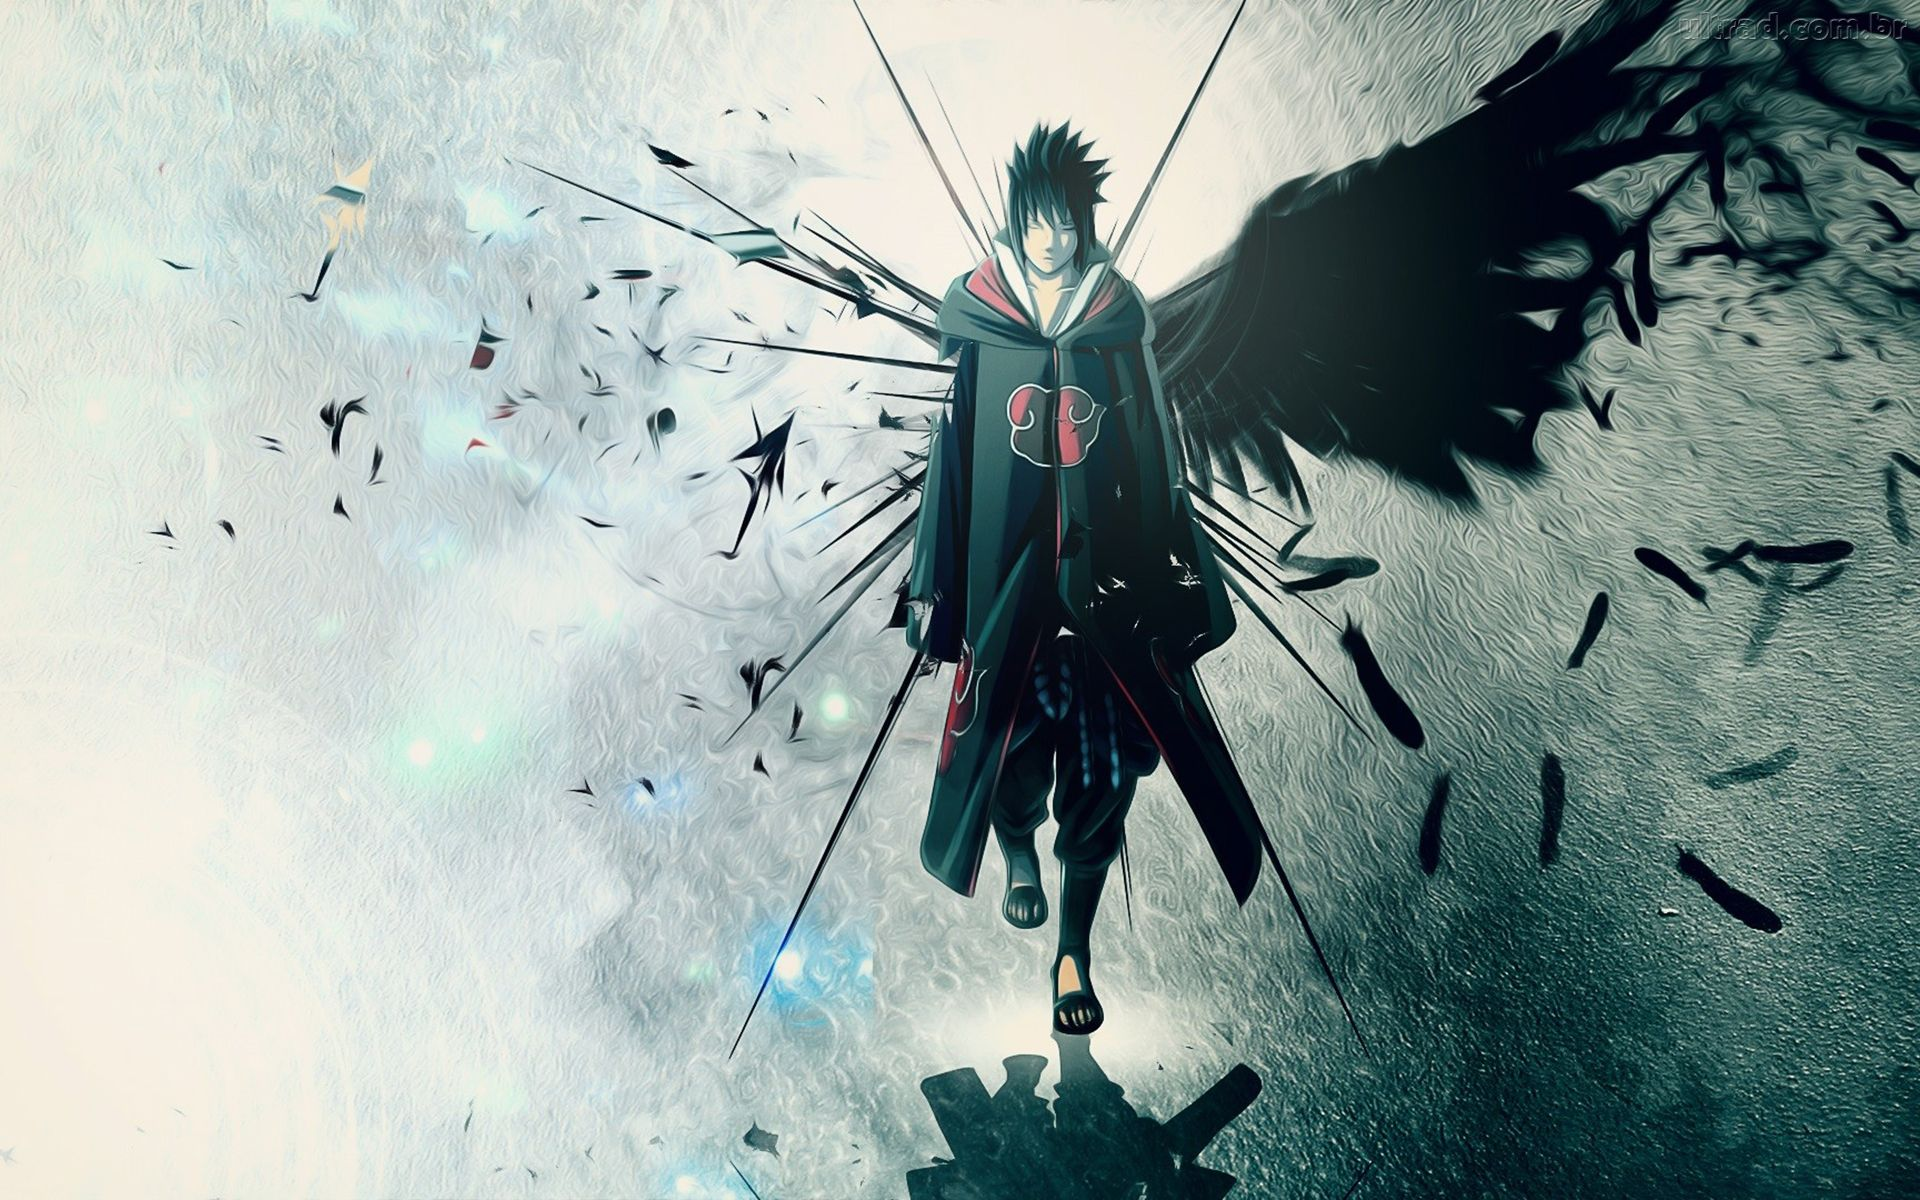 Uchiha Sasuke Wallpaper Background Wallpaper with 1920x1200 Resolution 1920x1200